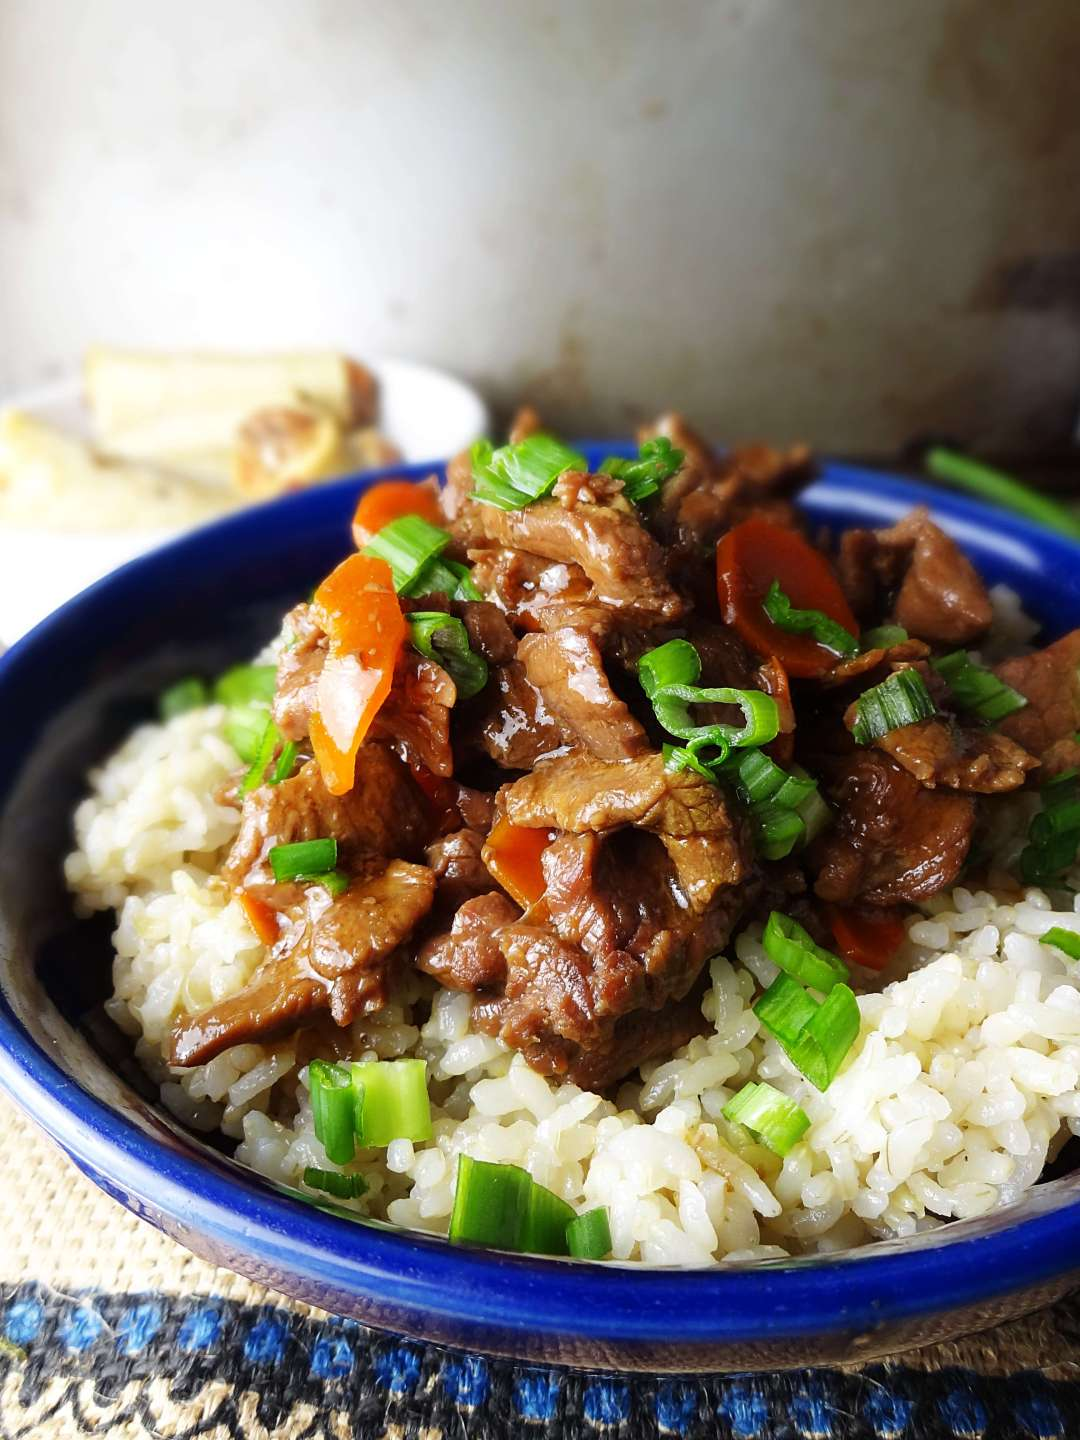 Slow Cooker Mongolian Beef recipe from The Cheerful Kitchen. This easy dinner will be a hit in your house!